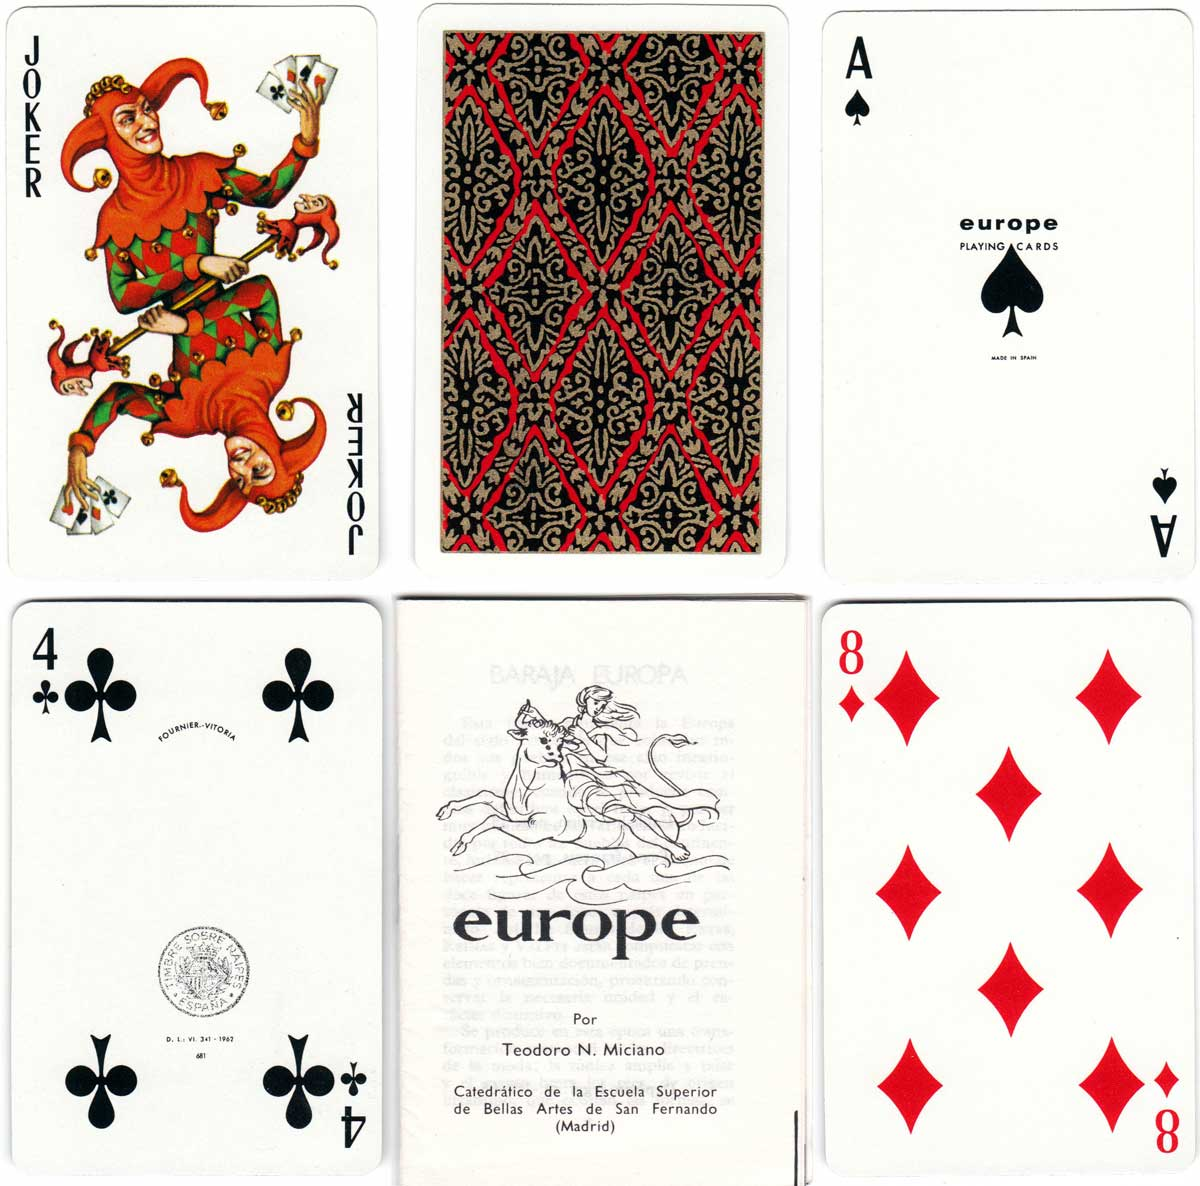 """Europe"" designed by Teodoro N. Miciano and printed by Heraclio Fournier in 1962"